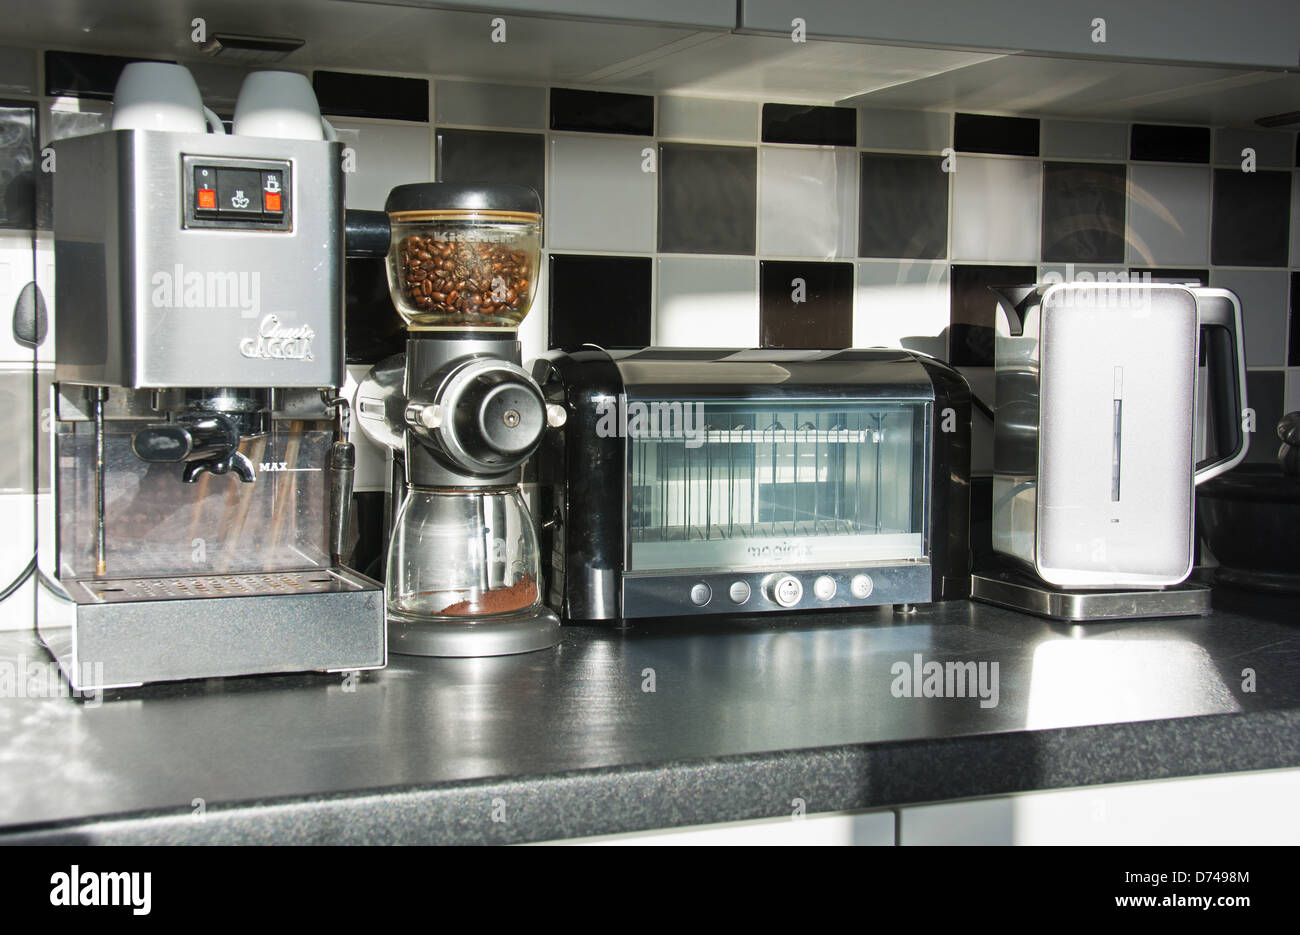 Modern Kitchen Appliances (coffee Machine, Bean Grinder, Toaster, Kettle)  In A Contemporary Kitchen. UK, 2013